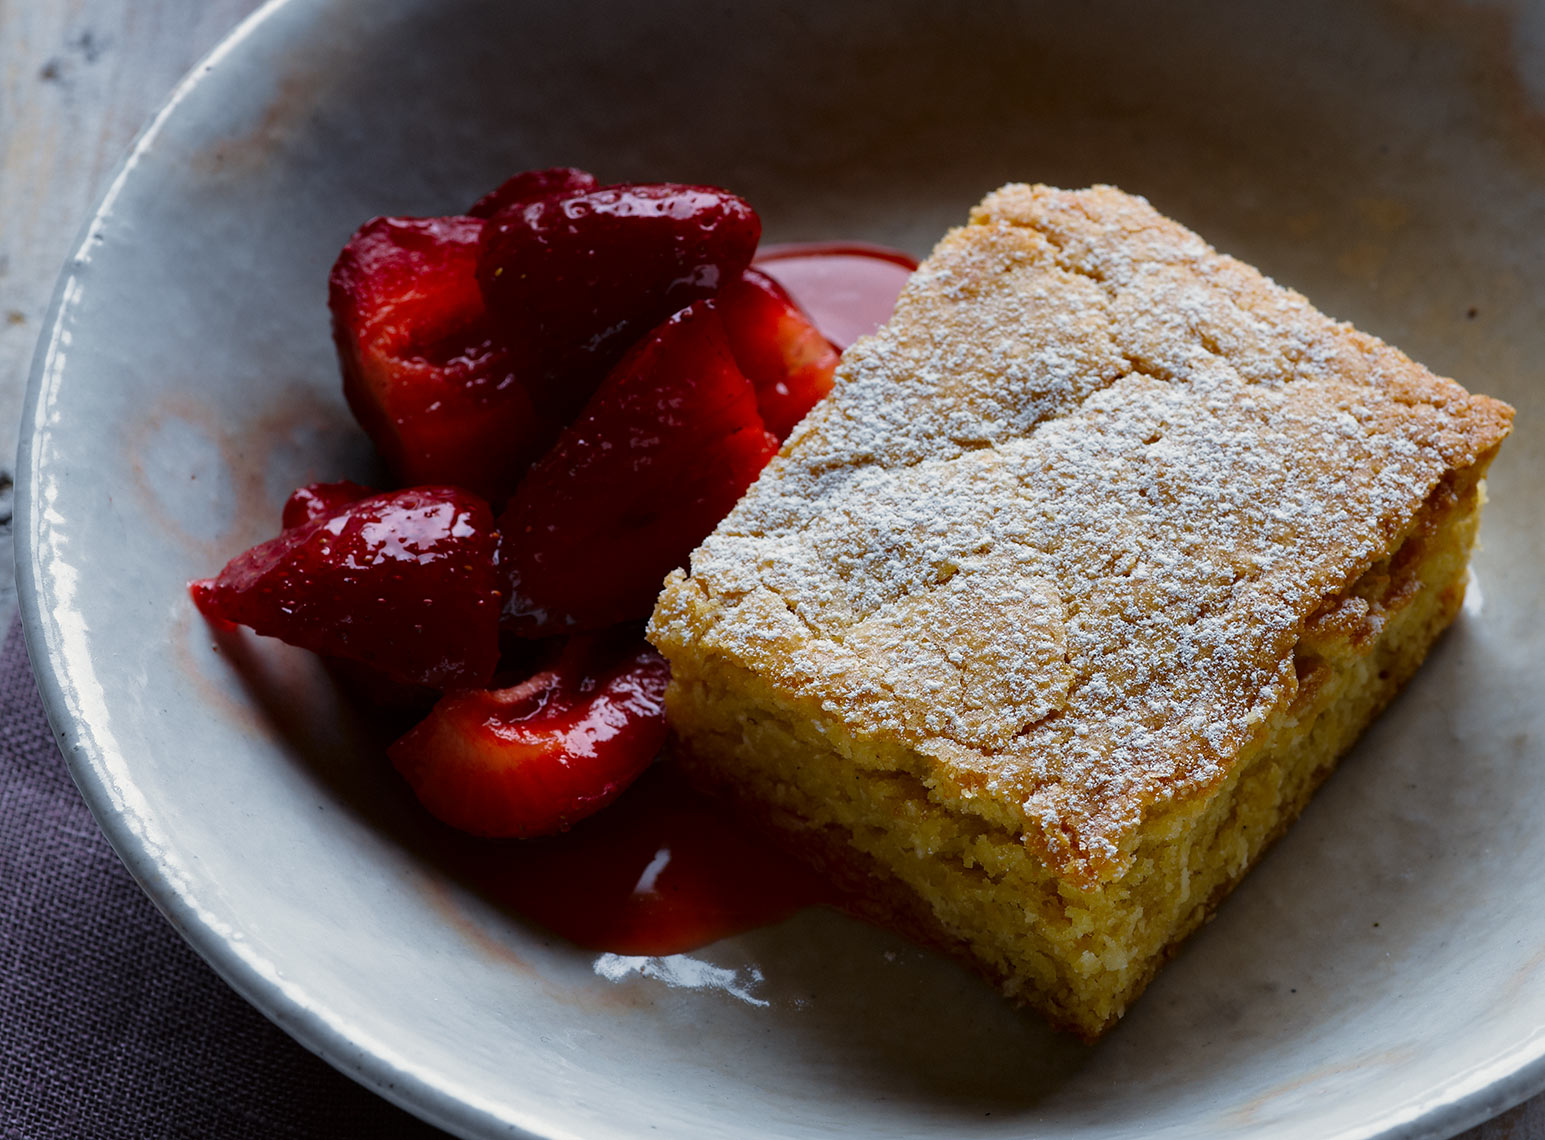 Cake and strawberries | Colin Campbell - Food Photographer